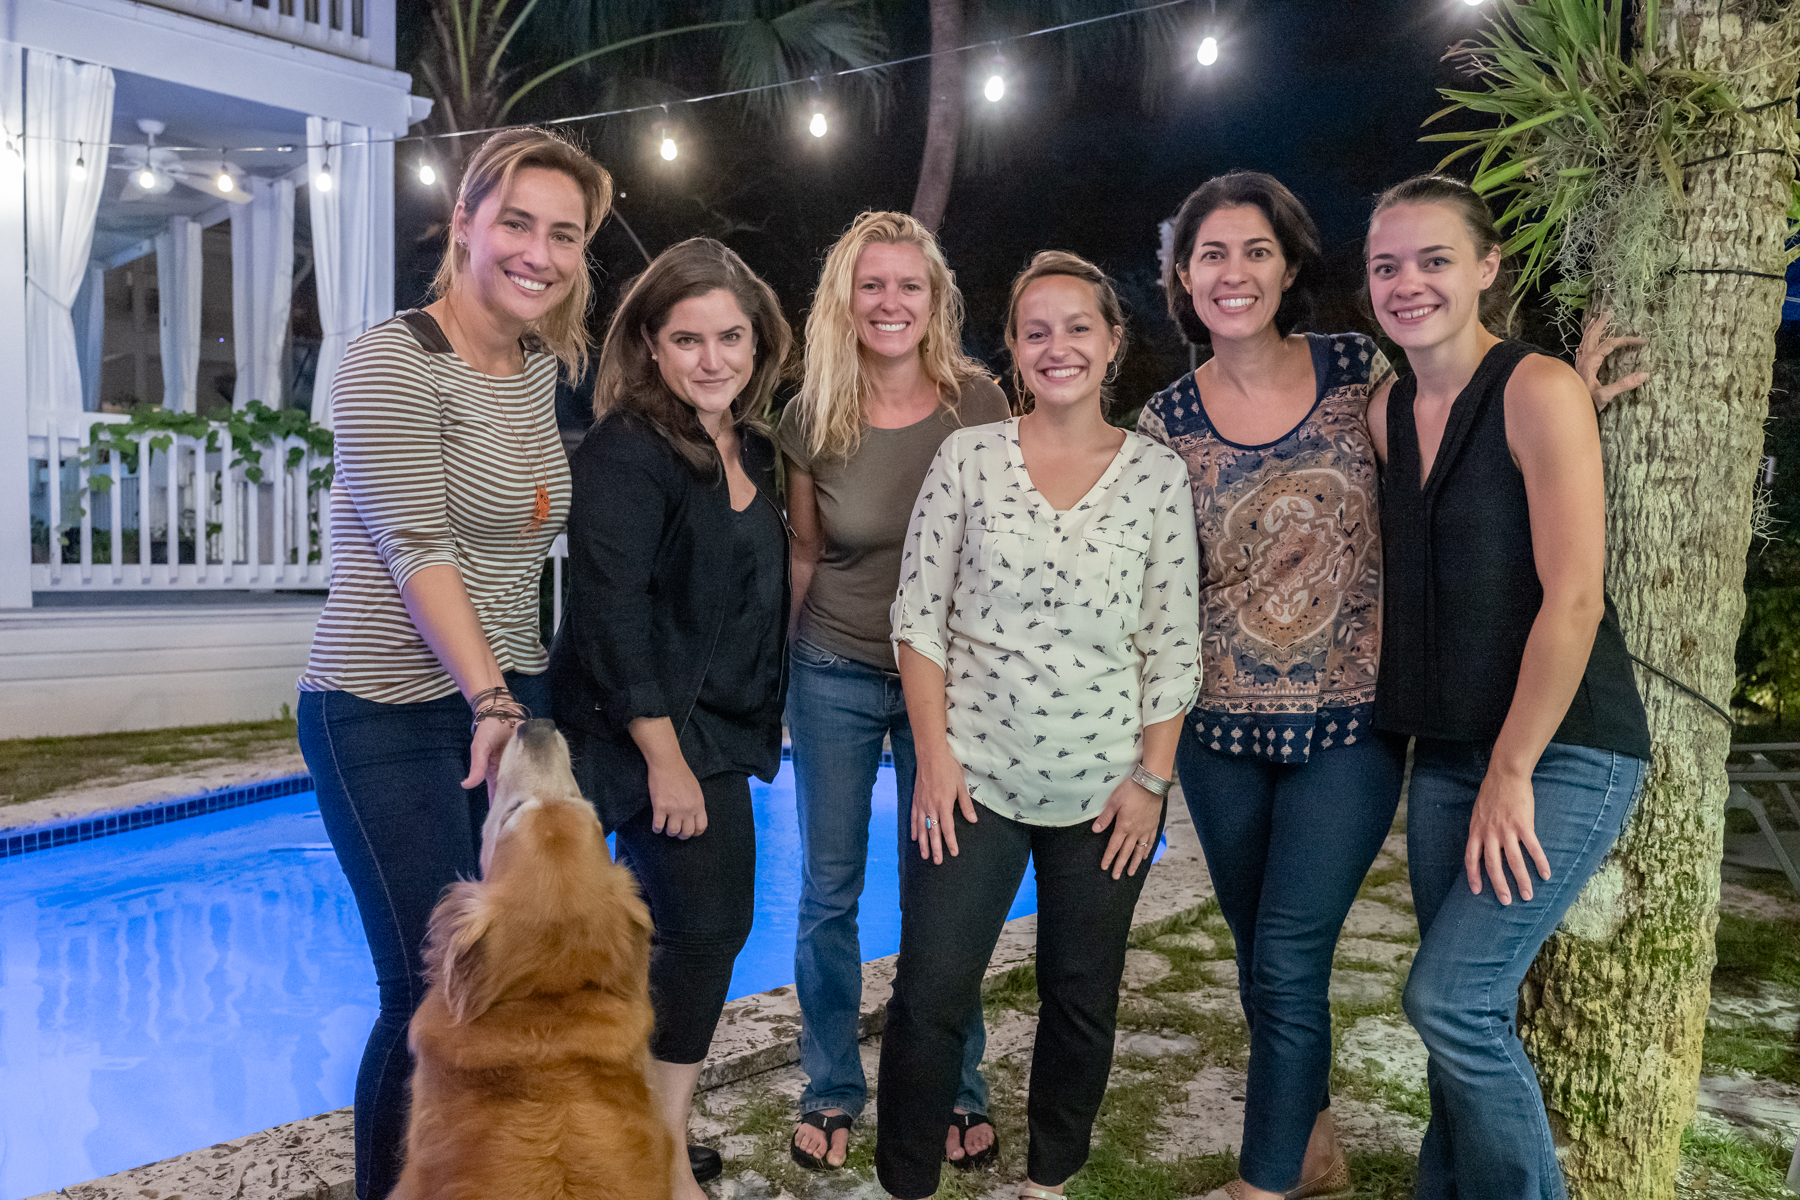 Eliana, Leticia, Kirsten H., Meredith, Ana & Kirsten V. during our first evening get-together.